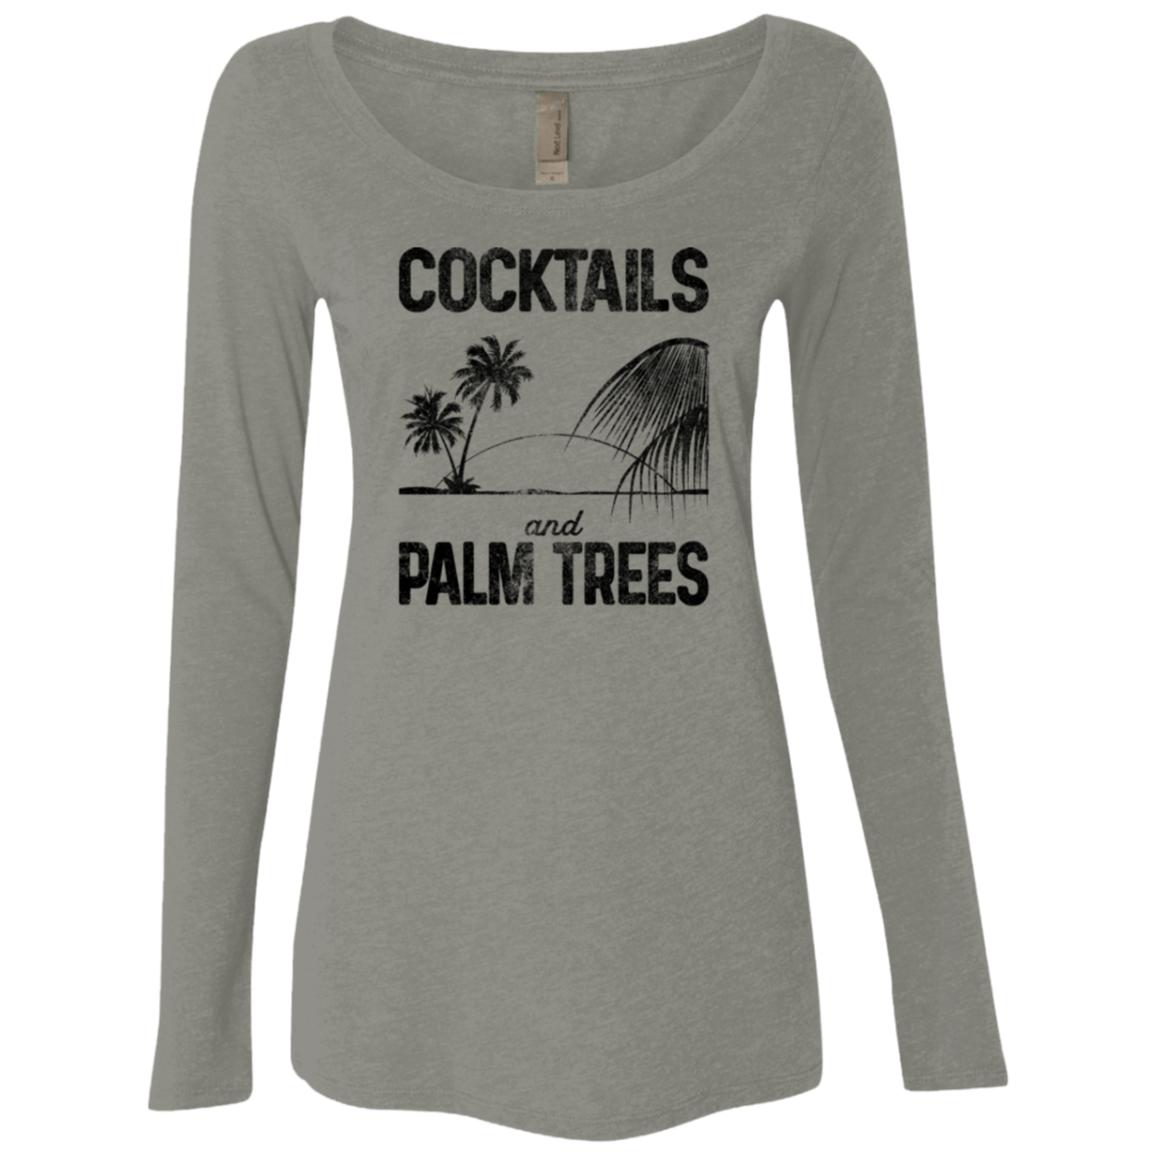 Cocktails and Palm Trees Women's Long Sleeve Tee - Trendy Tees